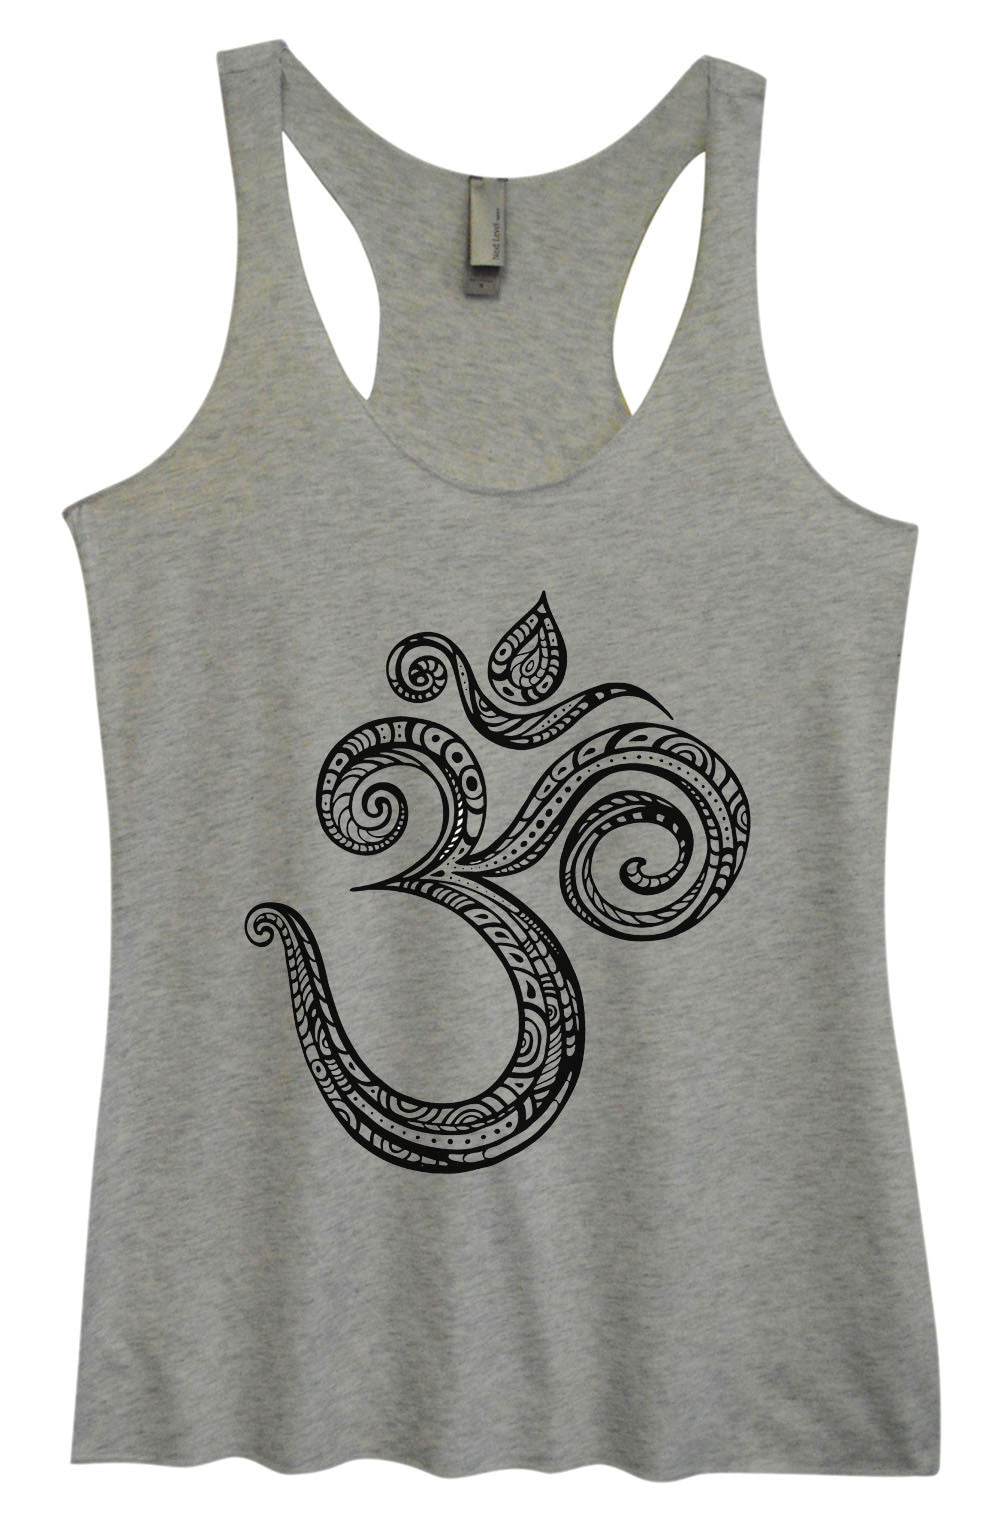 Womens Fashion Triblend Tank Top - OM - Tri-908 - Funny Shirts Tank Tops Burnouts and Triblends  - 2